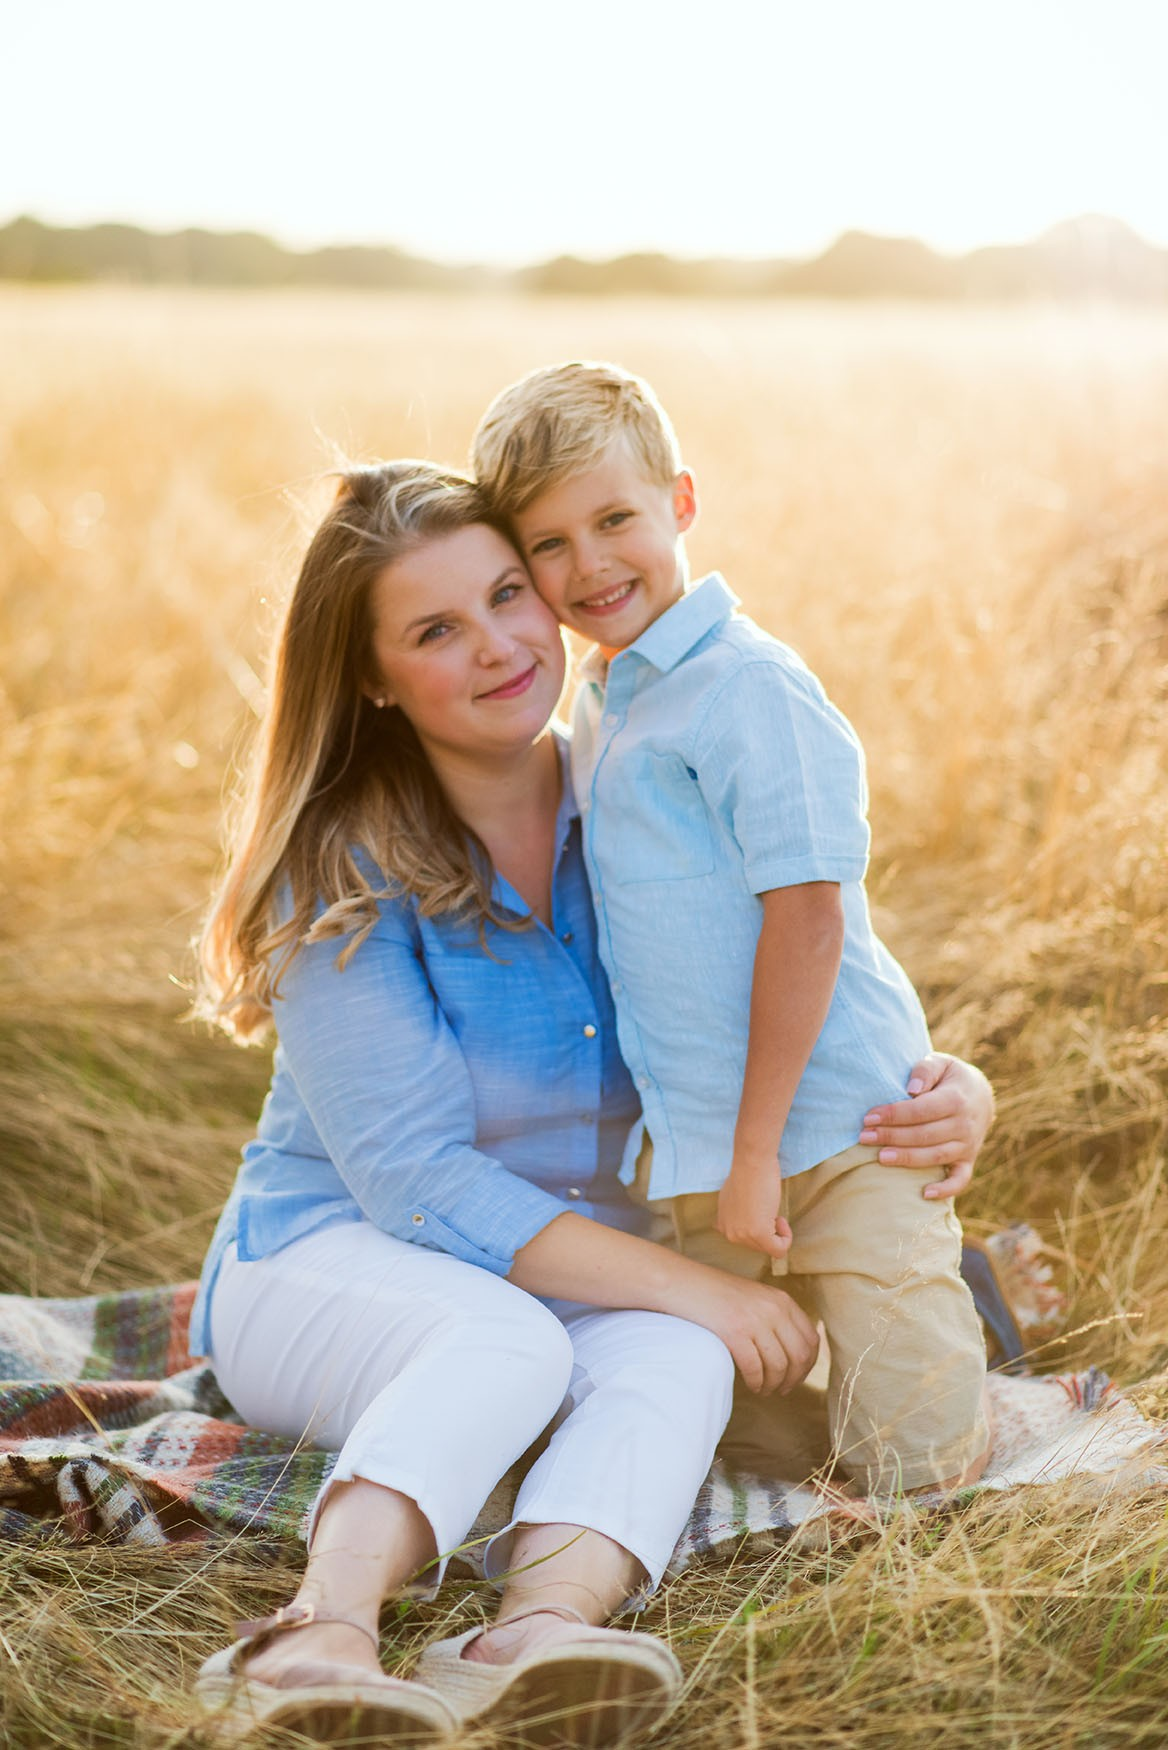 Mother and son hugging in golden hour photo shoot